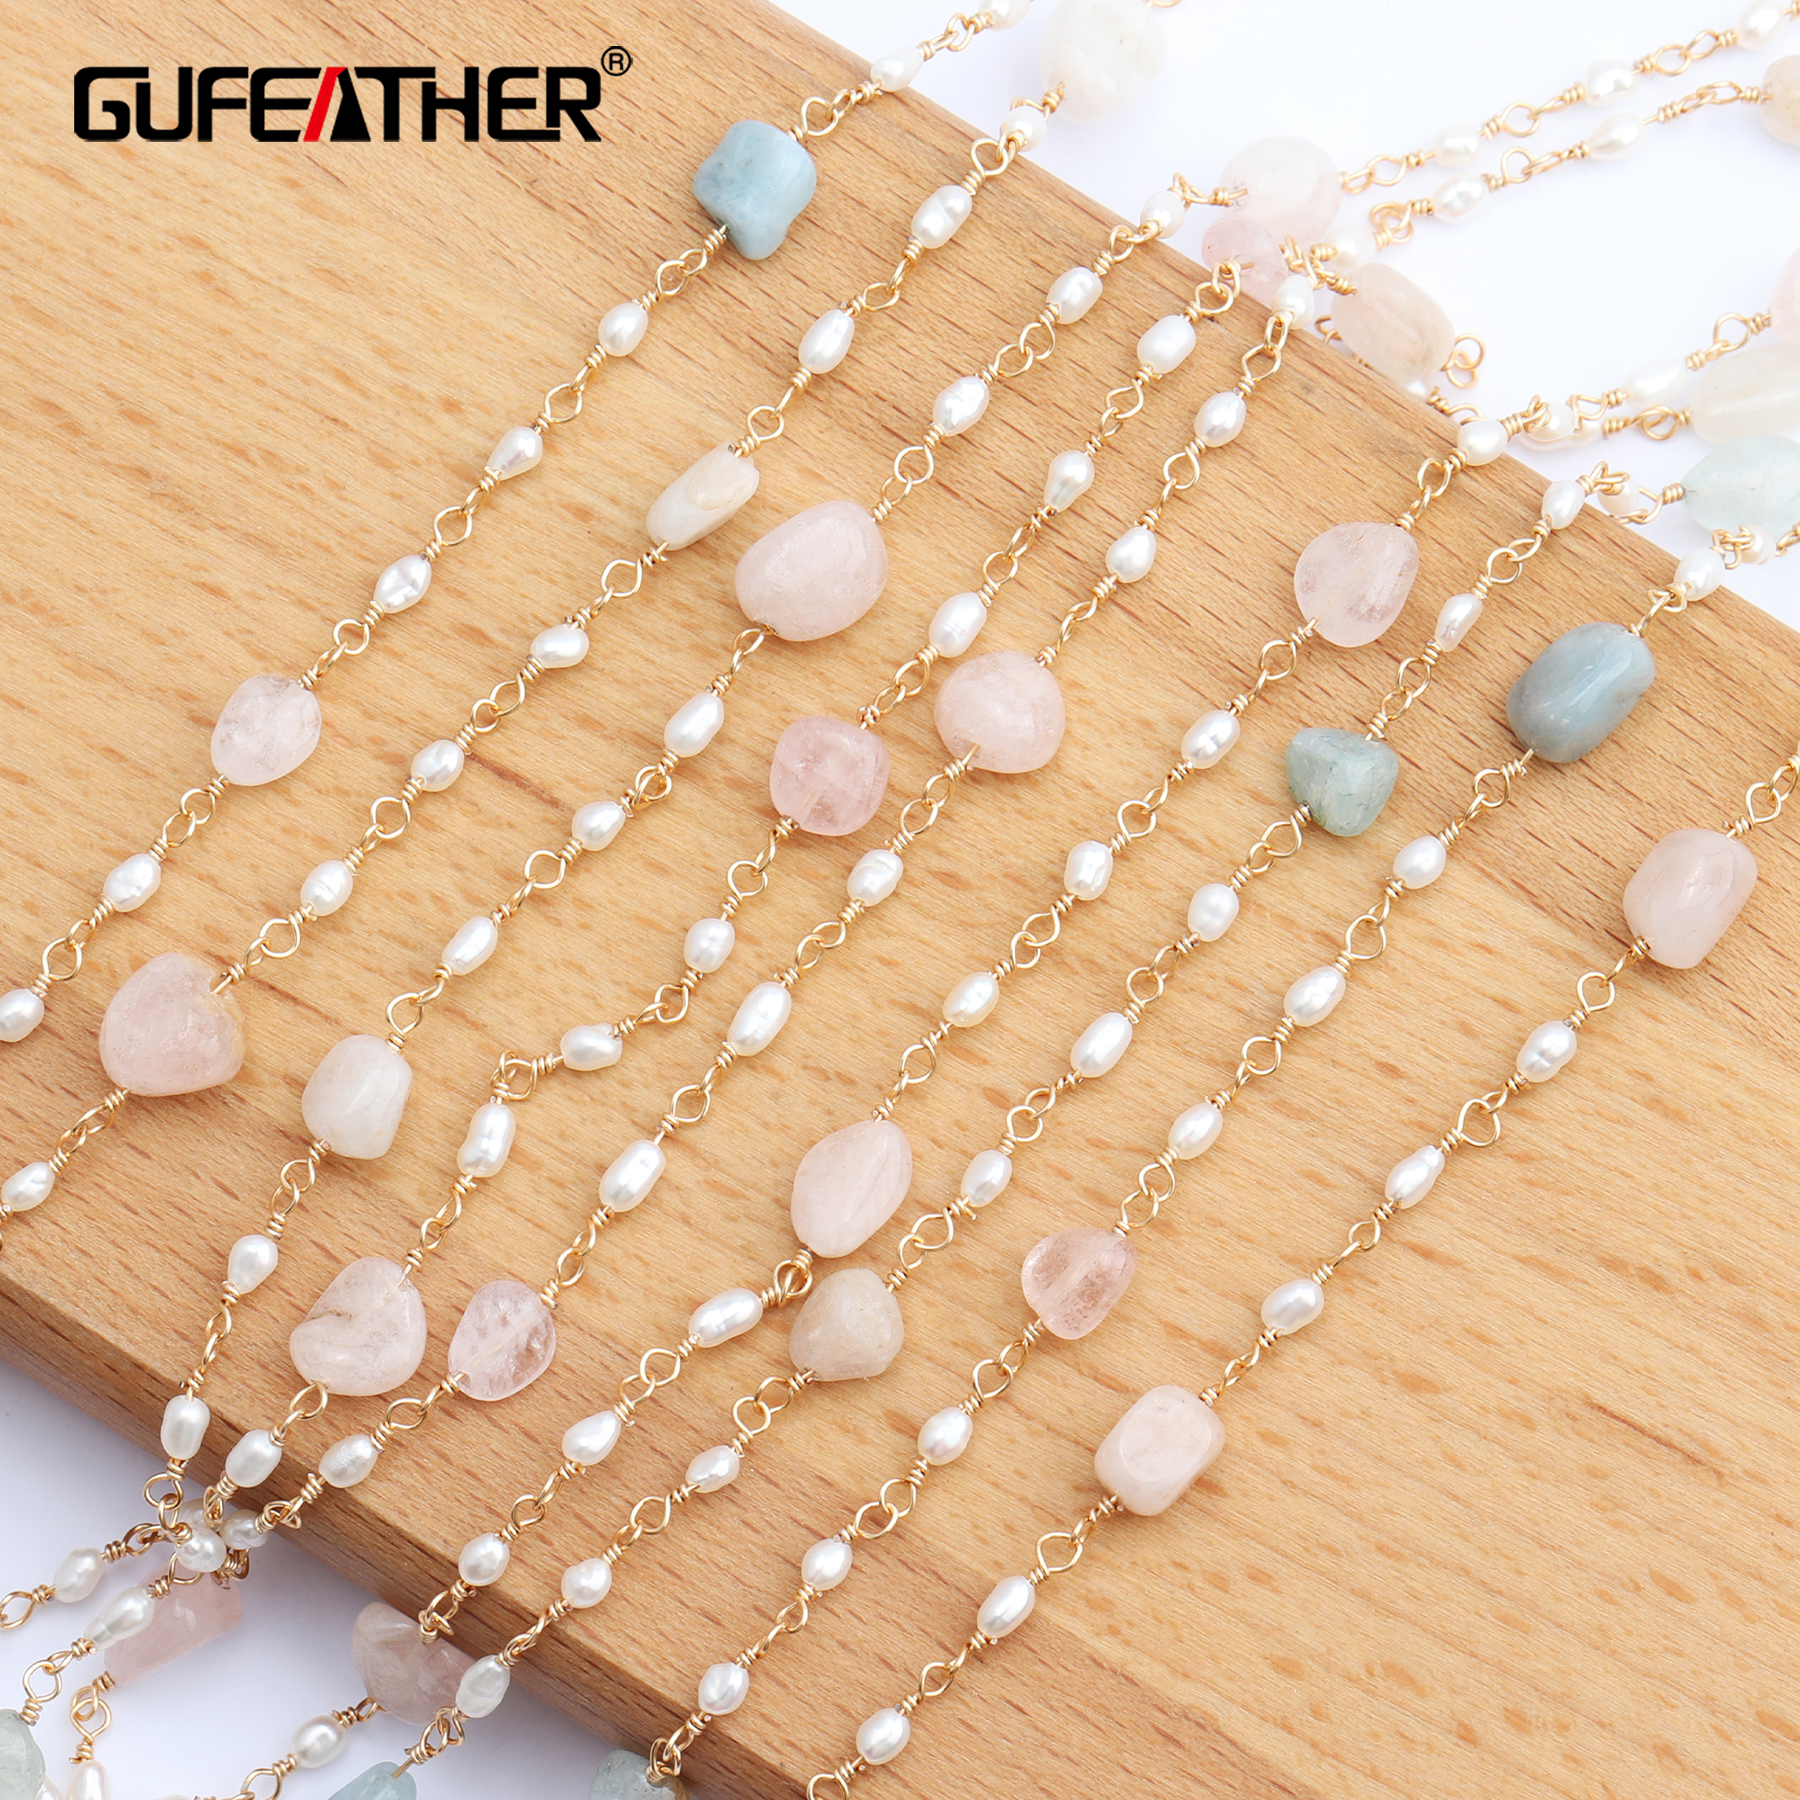 GUFEATHER C43,jewelry Accessories,18k Gold Plated,jewelry Making,natural Stone,pearl Chain Necklace,necklace For Women,1m/lot